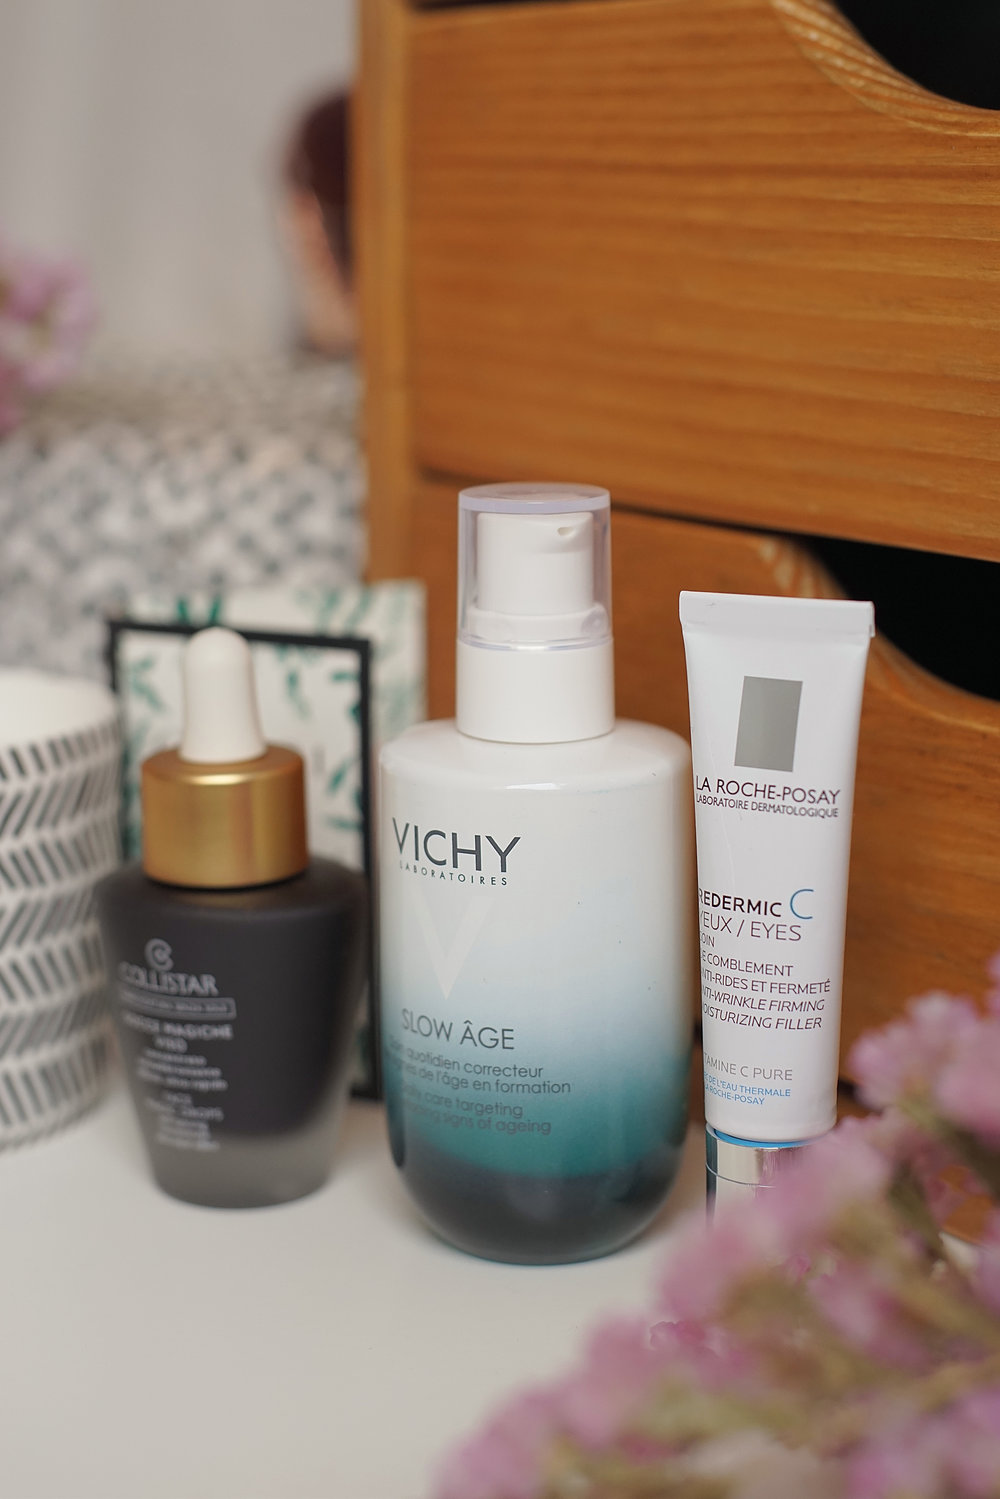 3 New Skincare Products On My Shelf - 5 months after review | www.theprettypeony.com